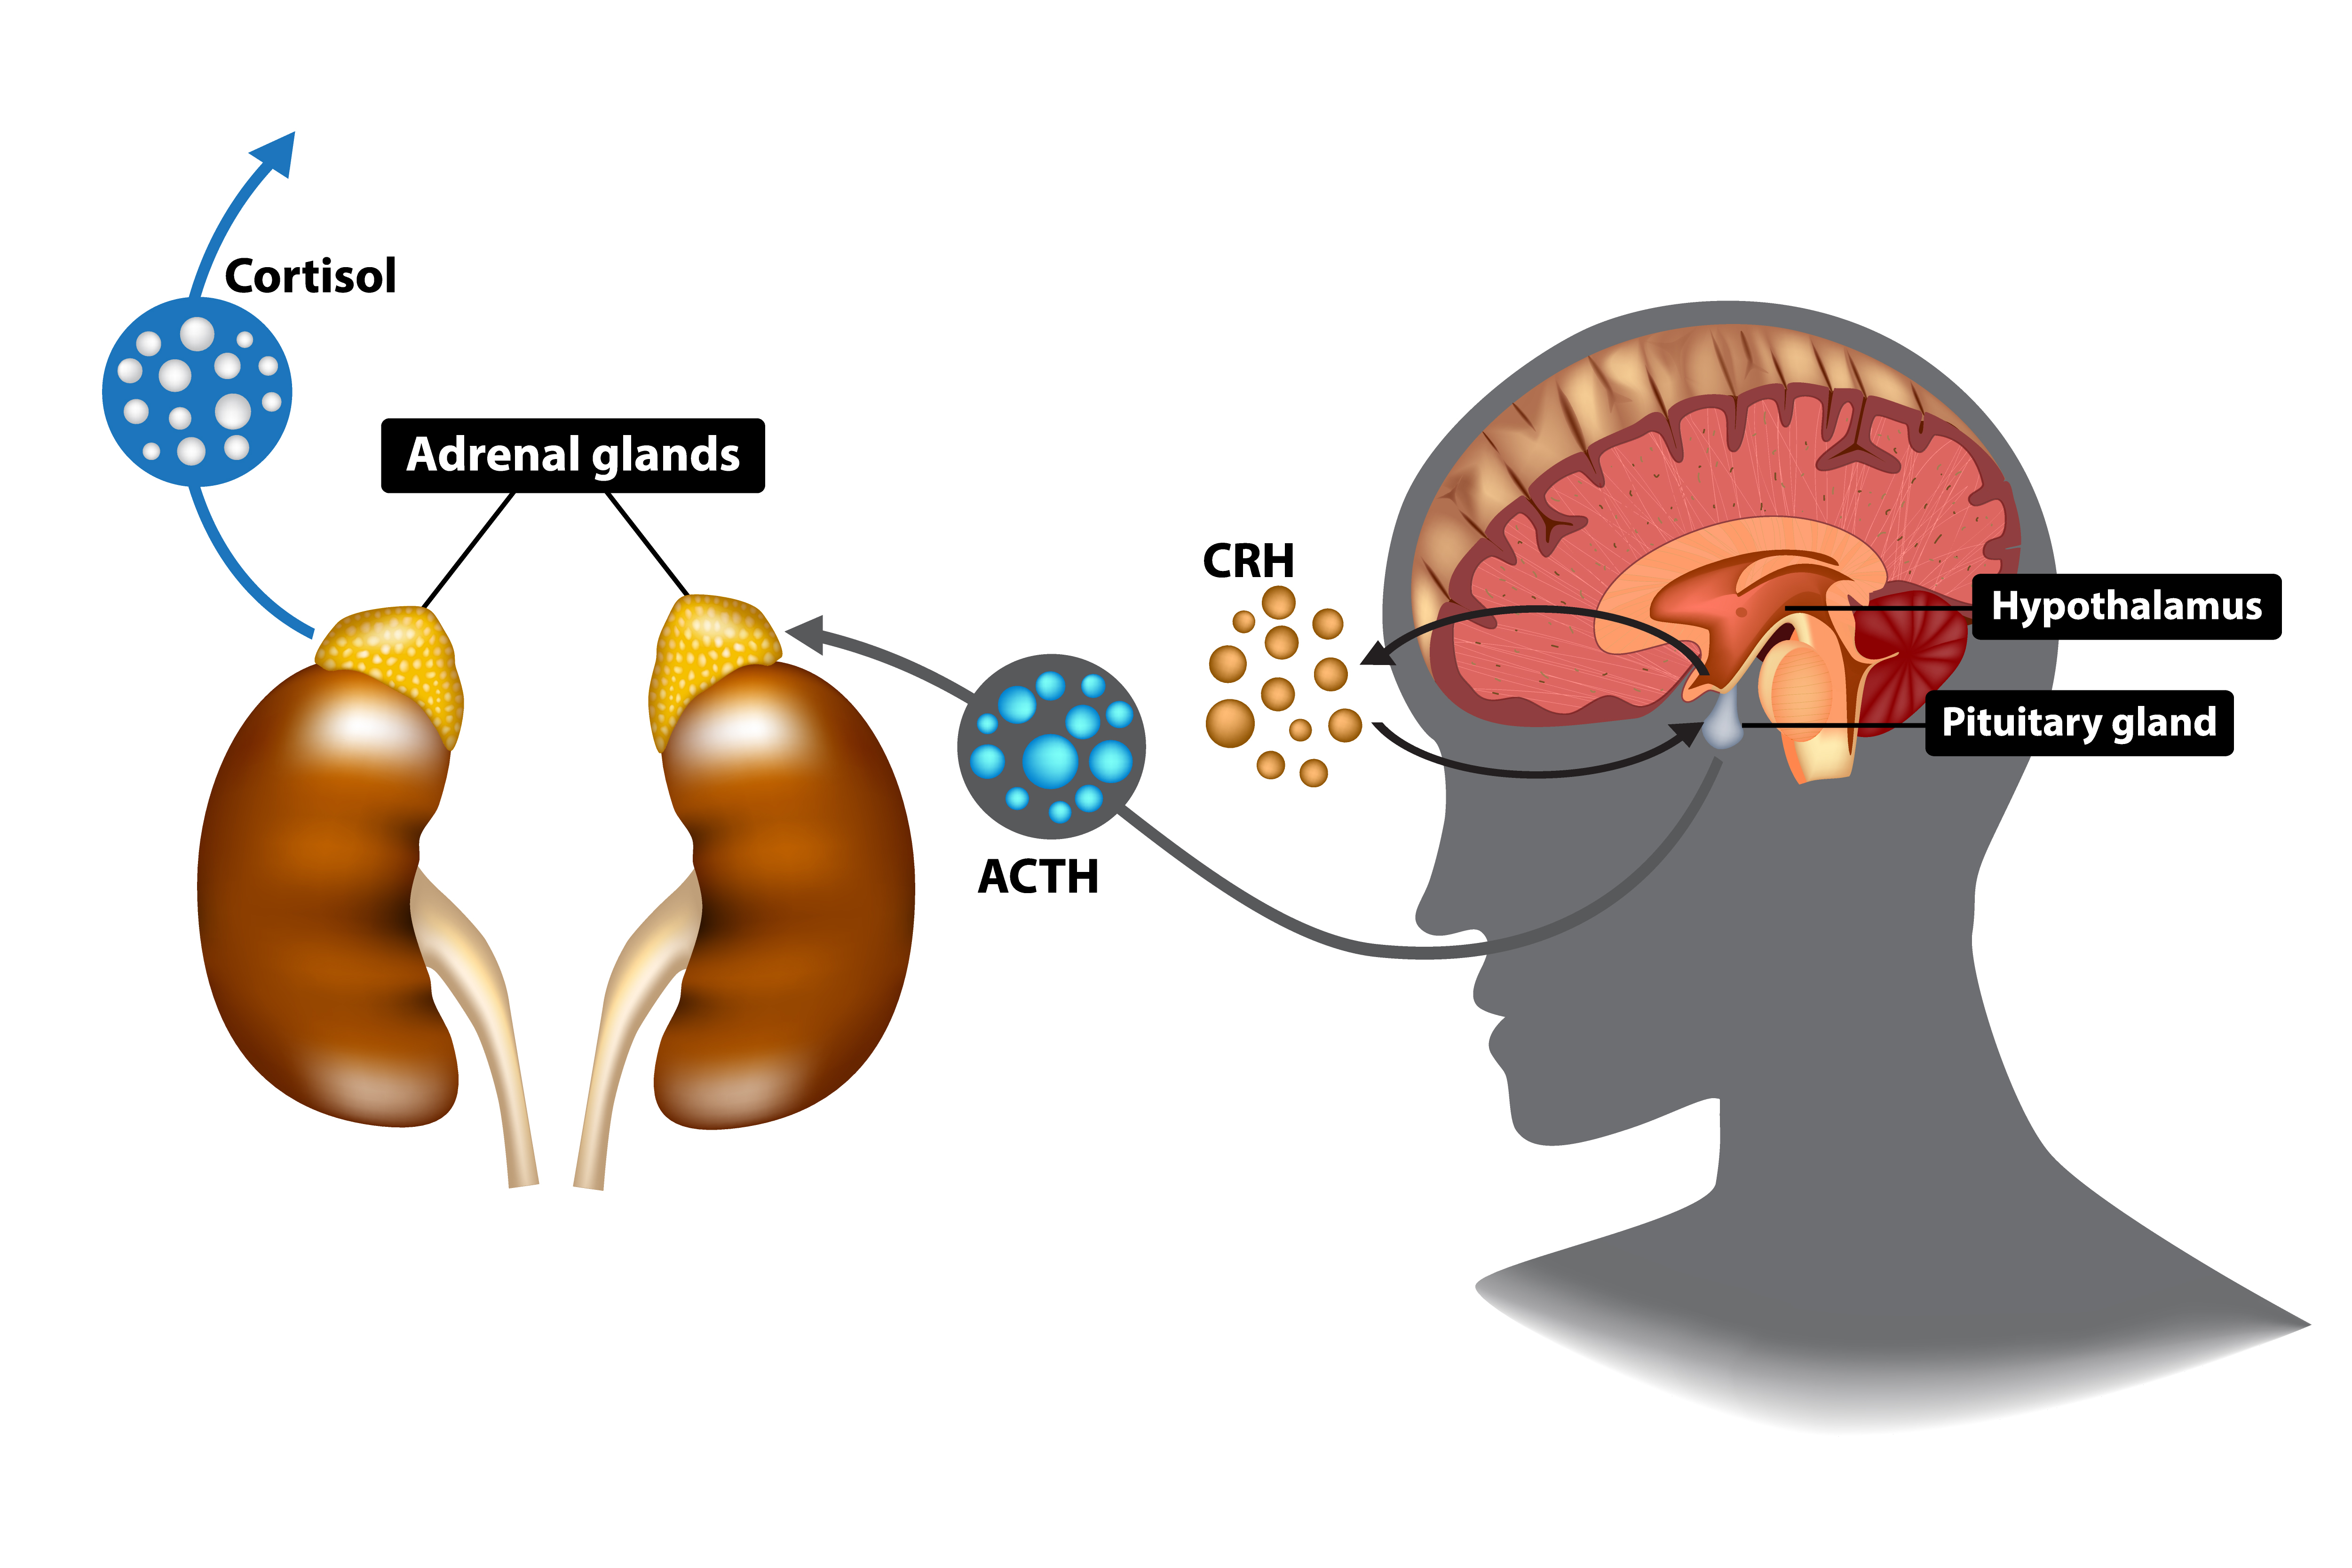 How cortisol is secreted